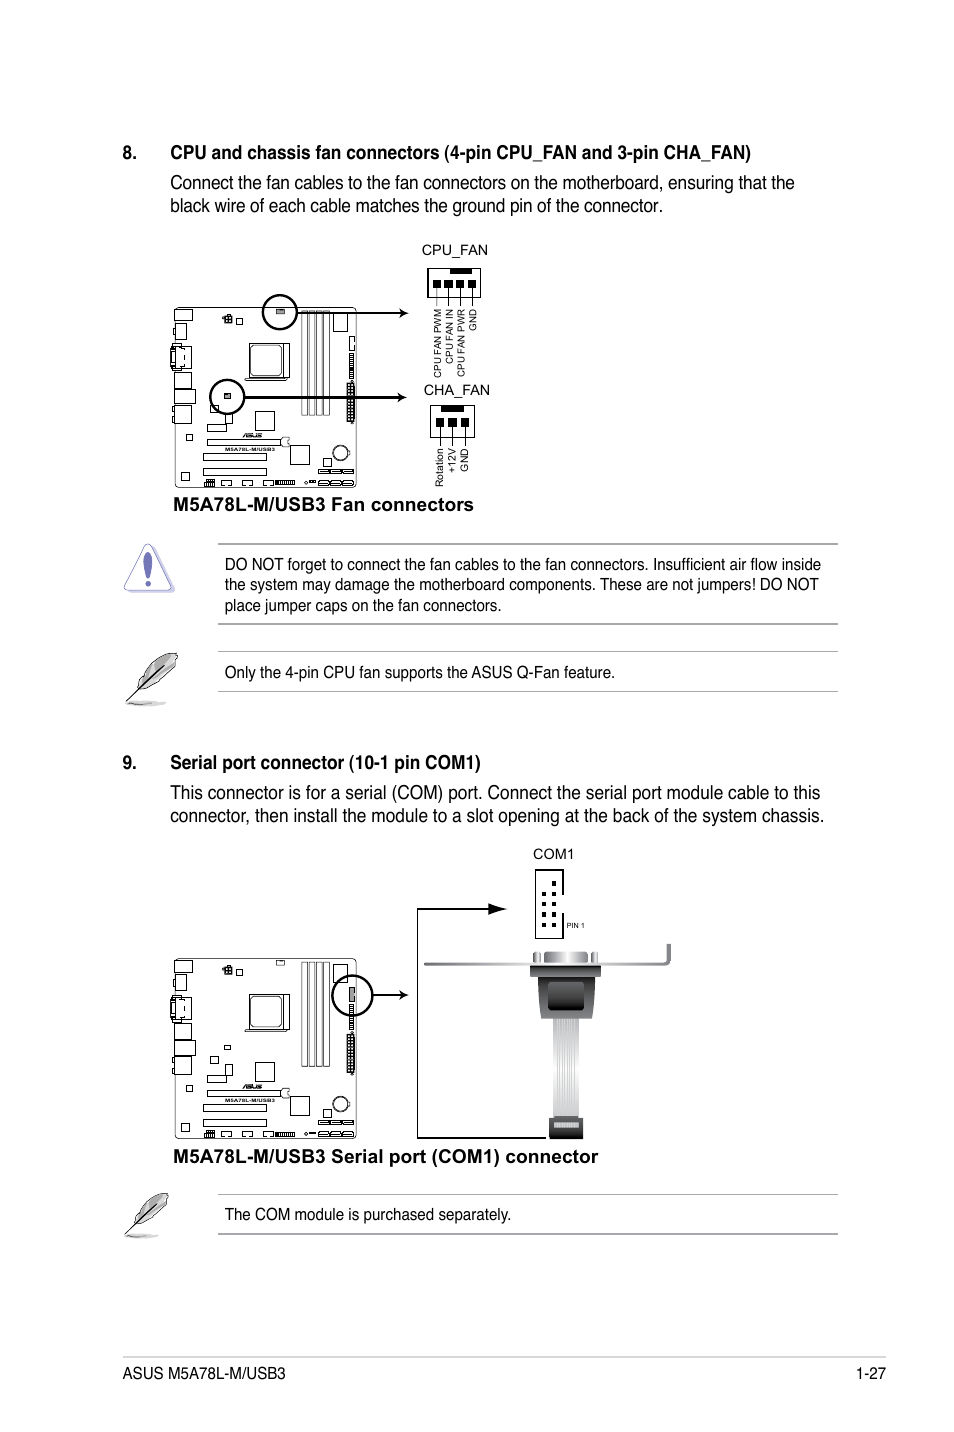 hight resolution of m5a78l m usb3 fan connectors asus m5a78l m usb3 user manual page 37 64